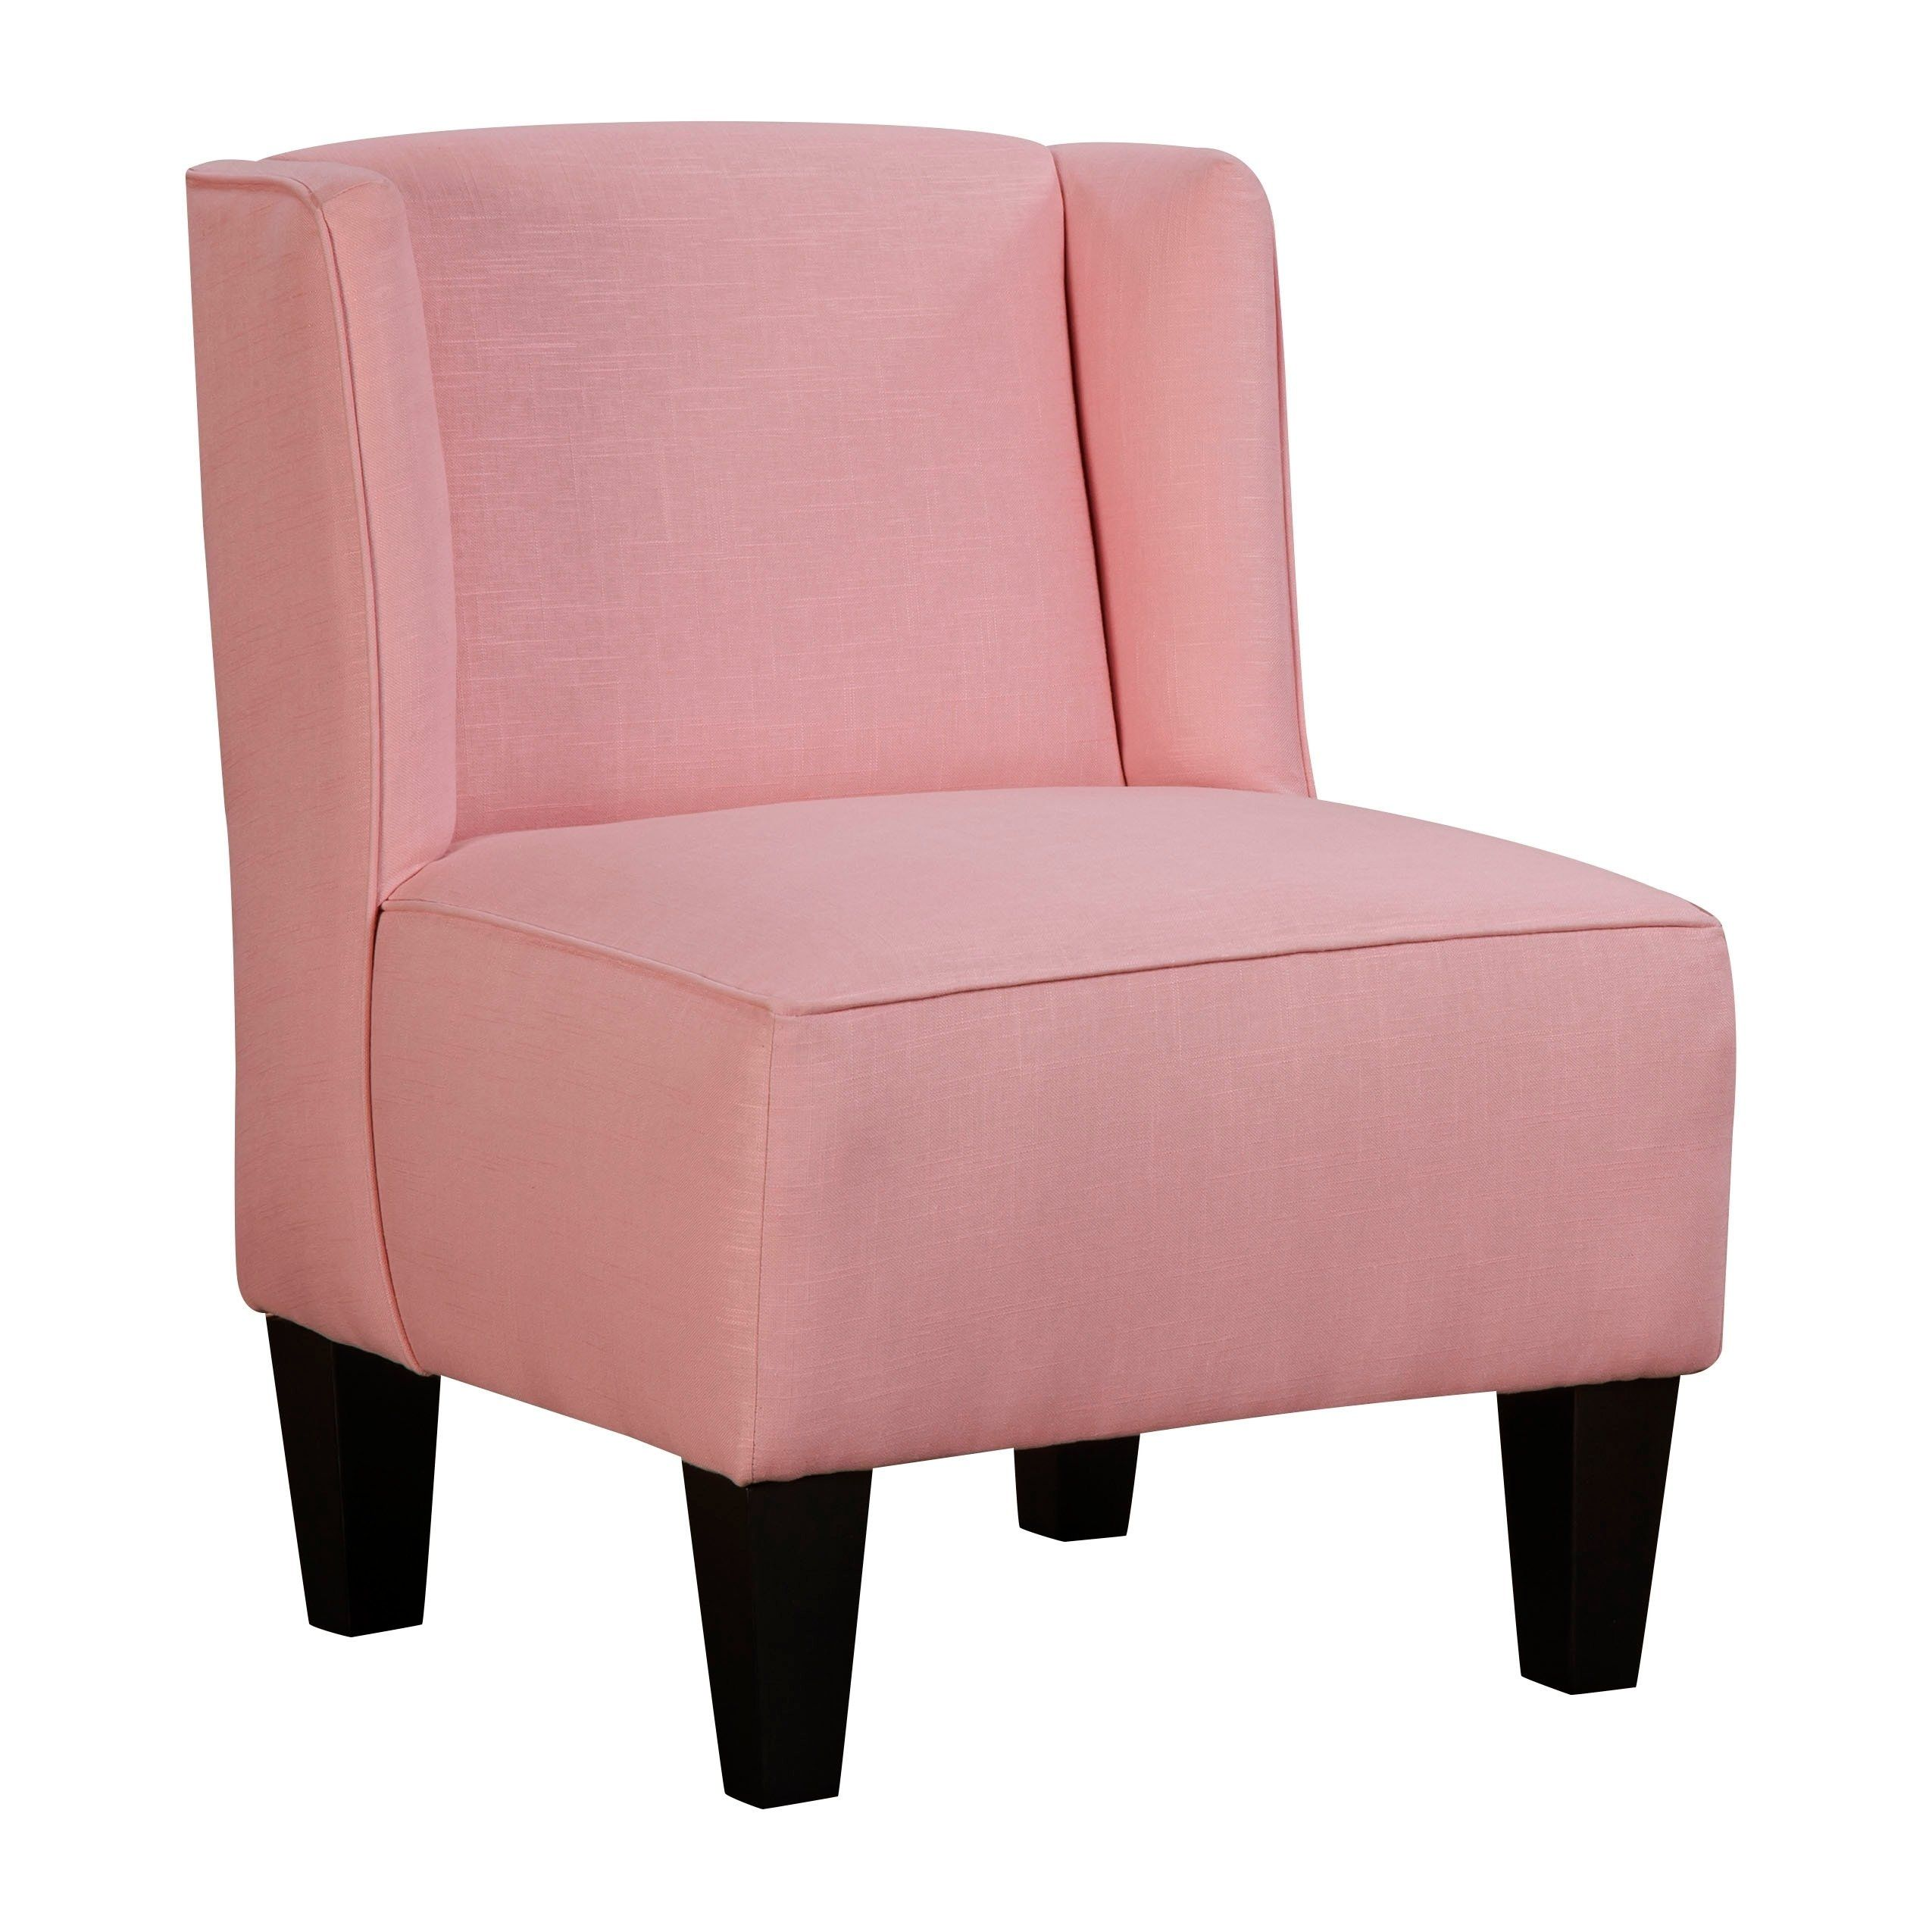 Chapter 3 Charlie Winged Slipper Chair Pink Armless Solid